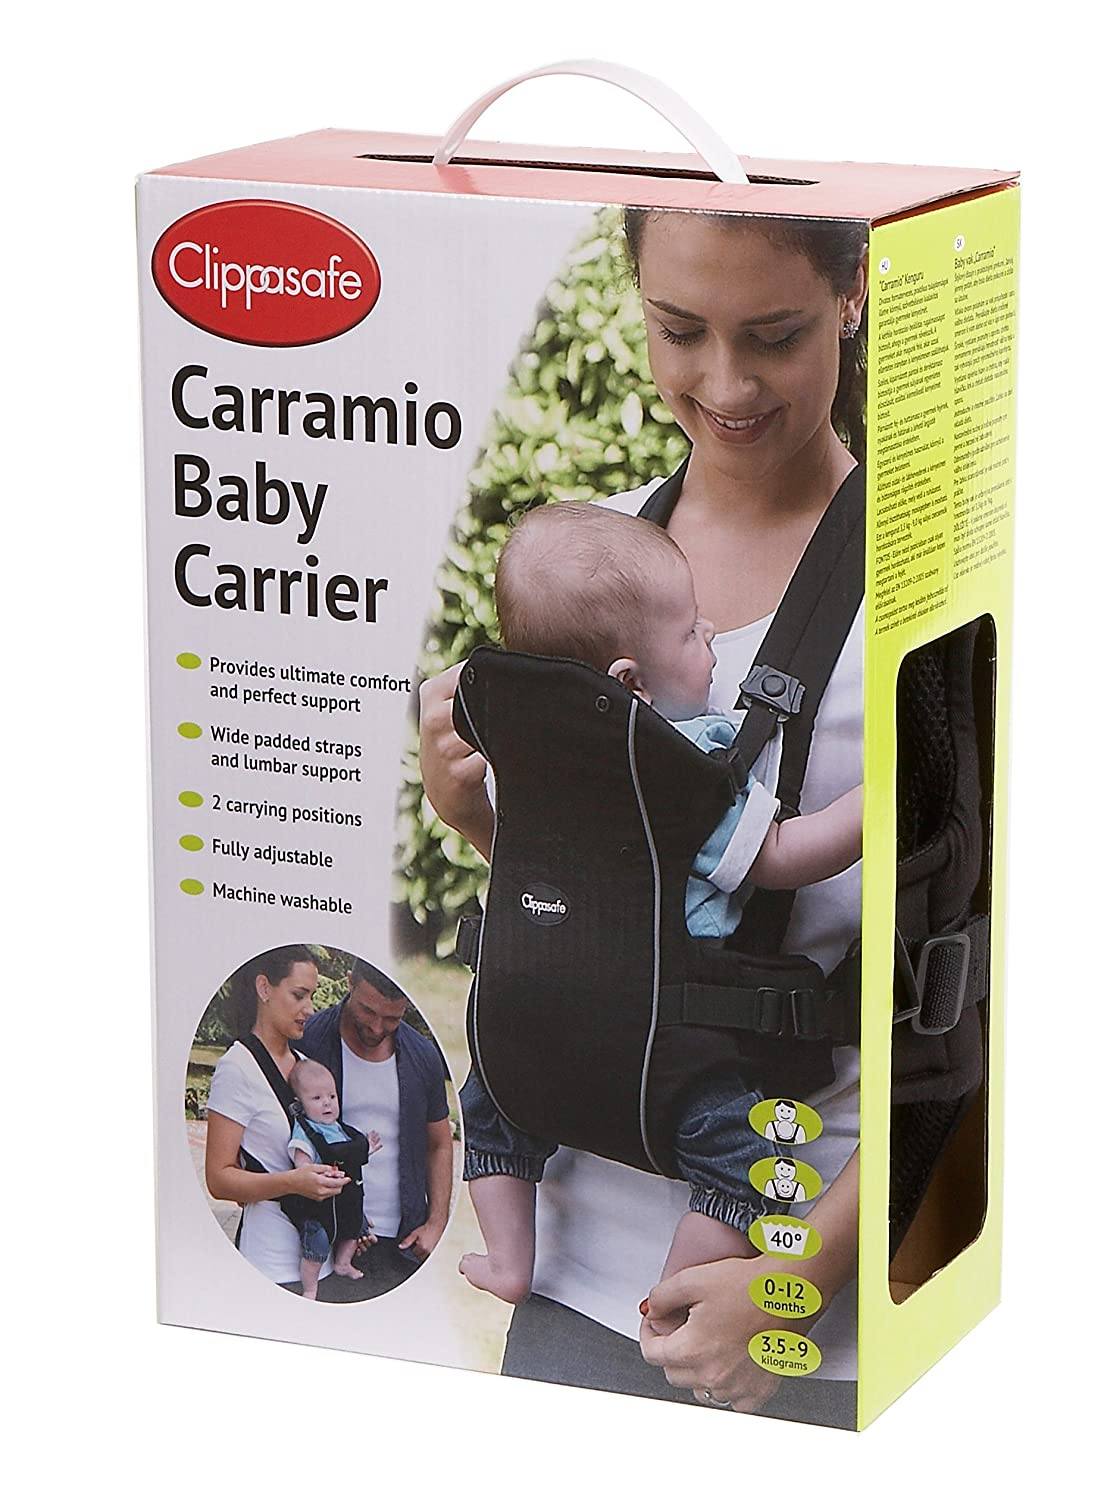 Clippasafe Carramio Baby Carrier (Black) CL600